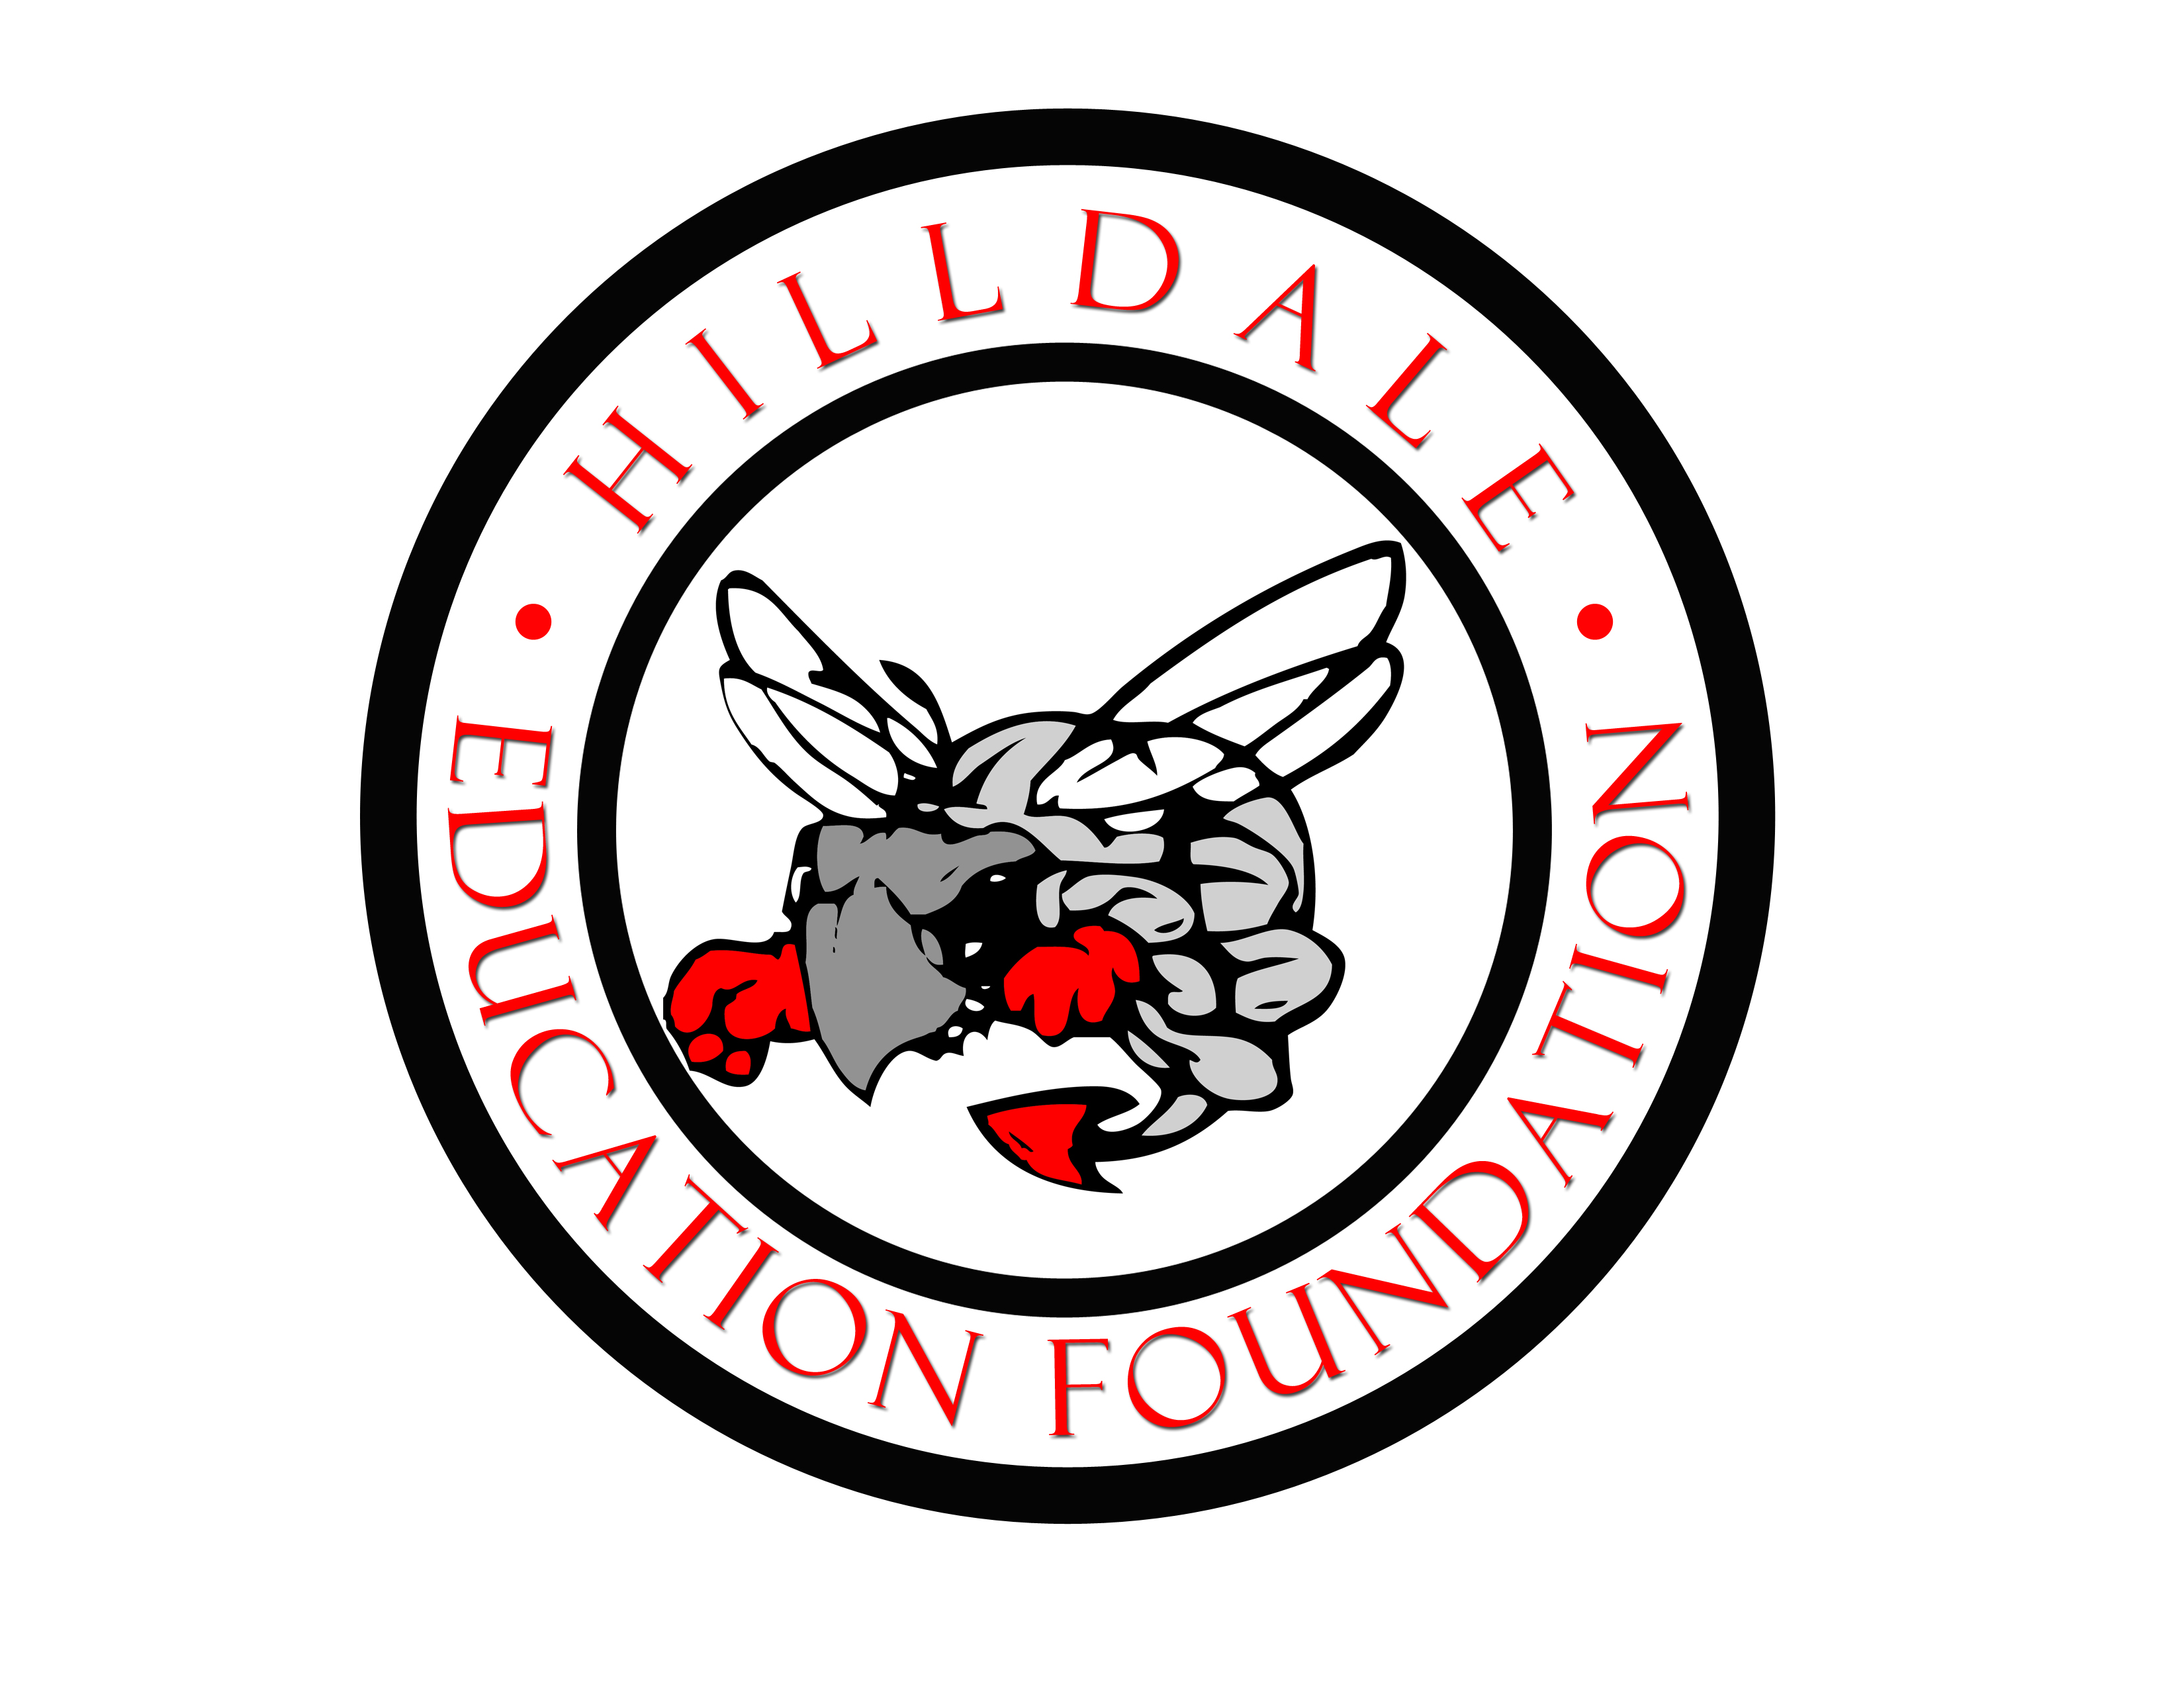 Hilldale Education Foundation